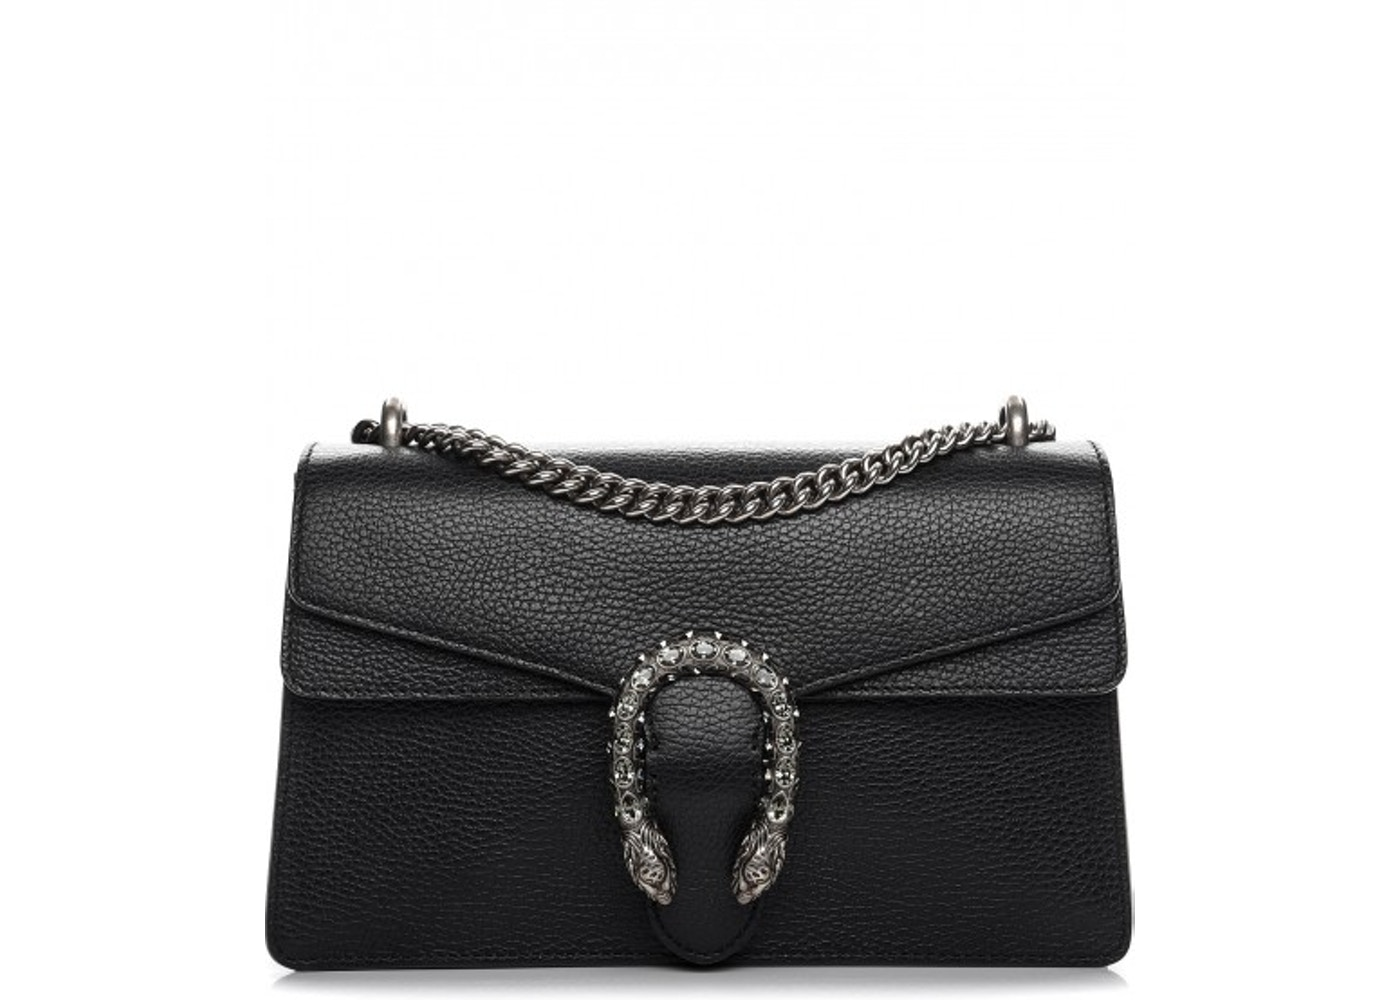 cbdd8a3df8ac Gucci Dionysus Shoulder Bag Small Black. Small Black